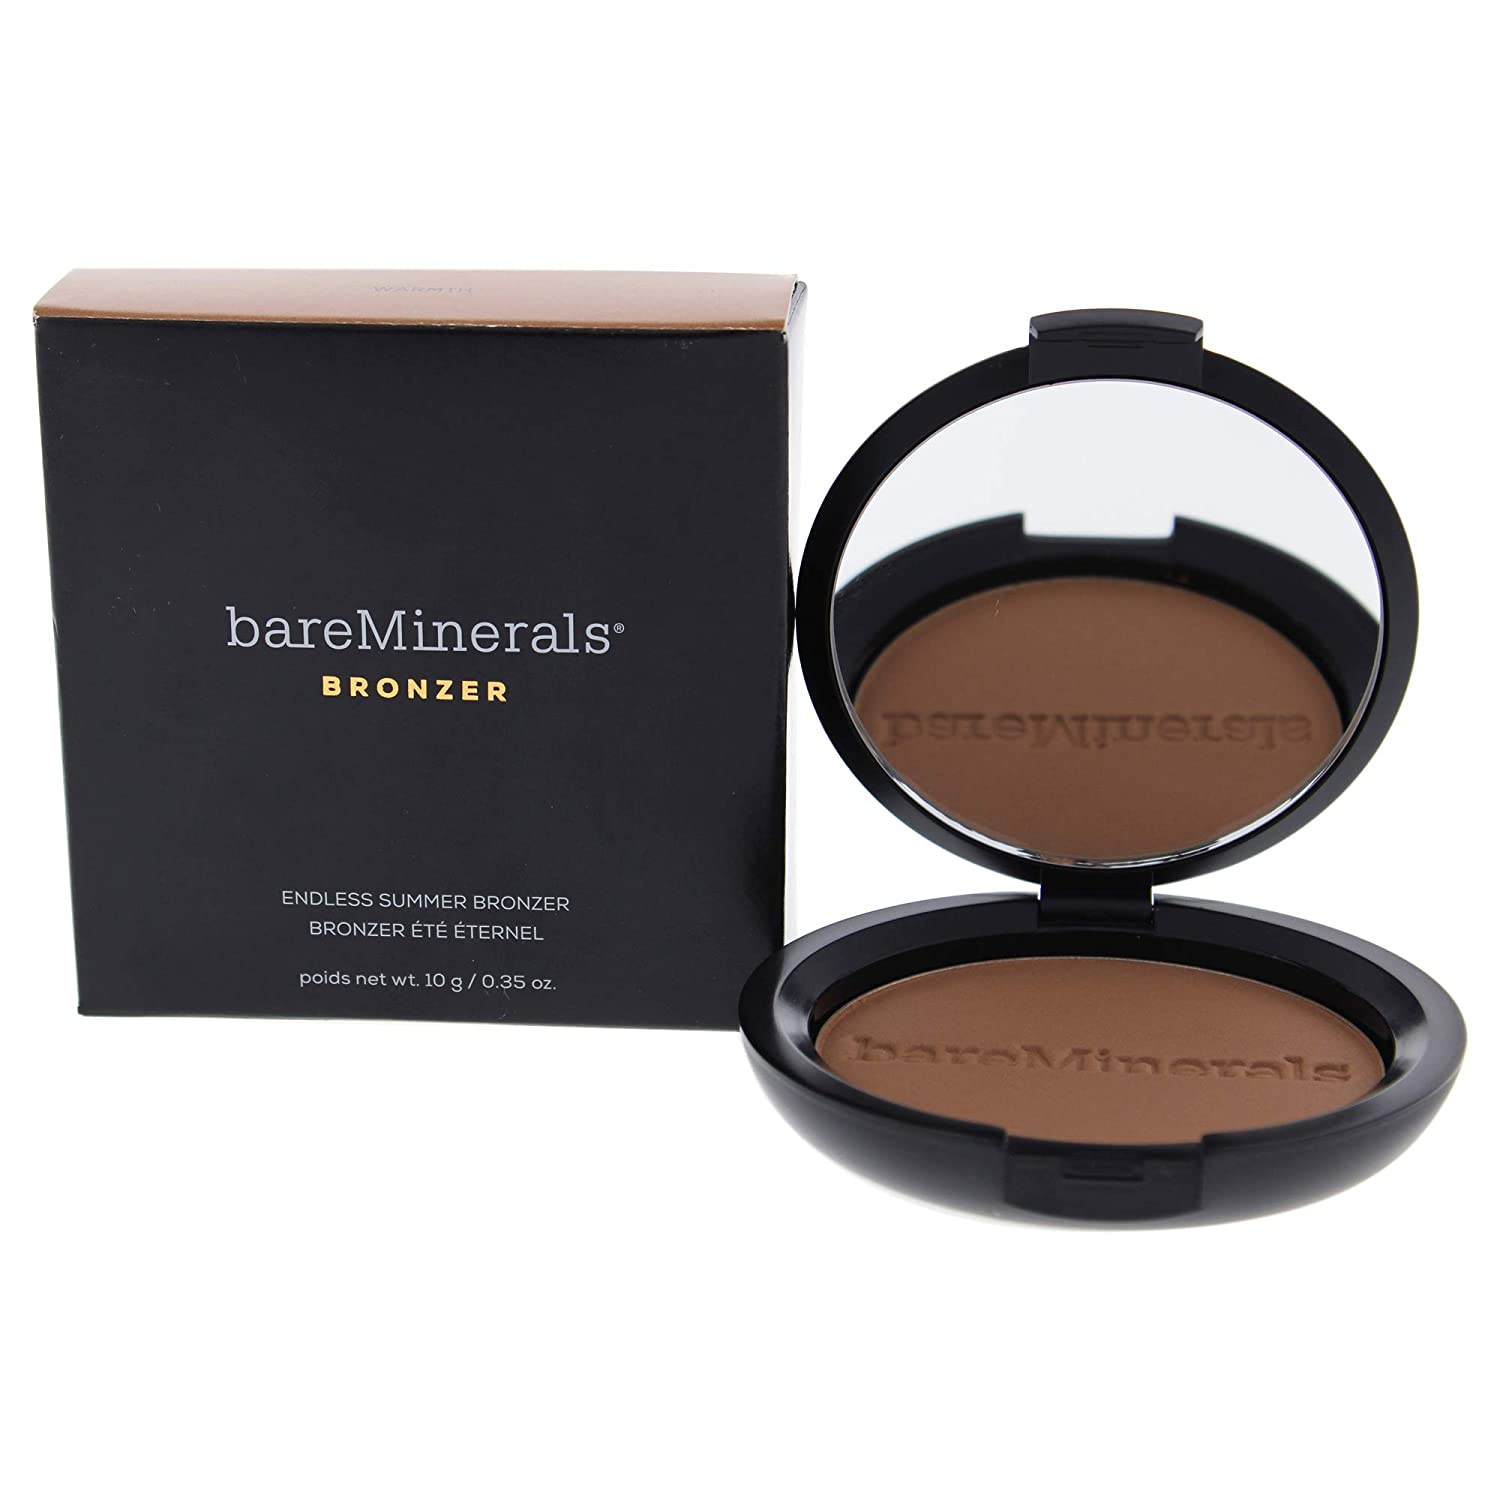 Bare Escentuals Endless Max 61% OFF Summer 70% OFF Outlet Warmth Bronzer -